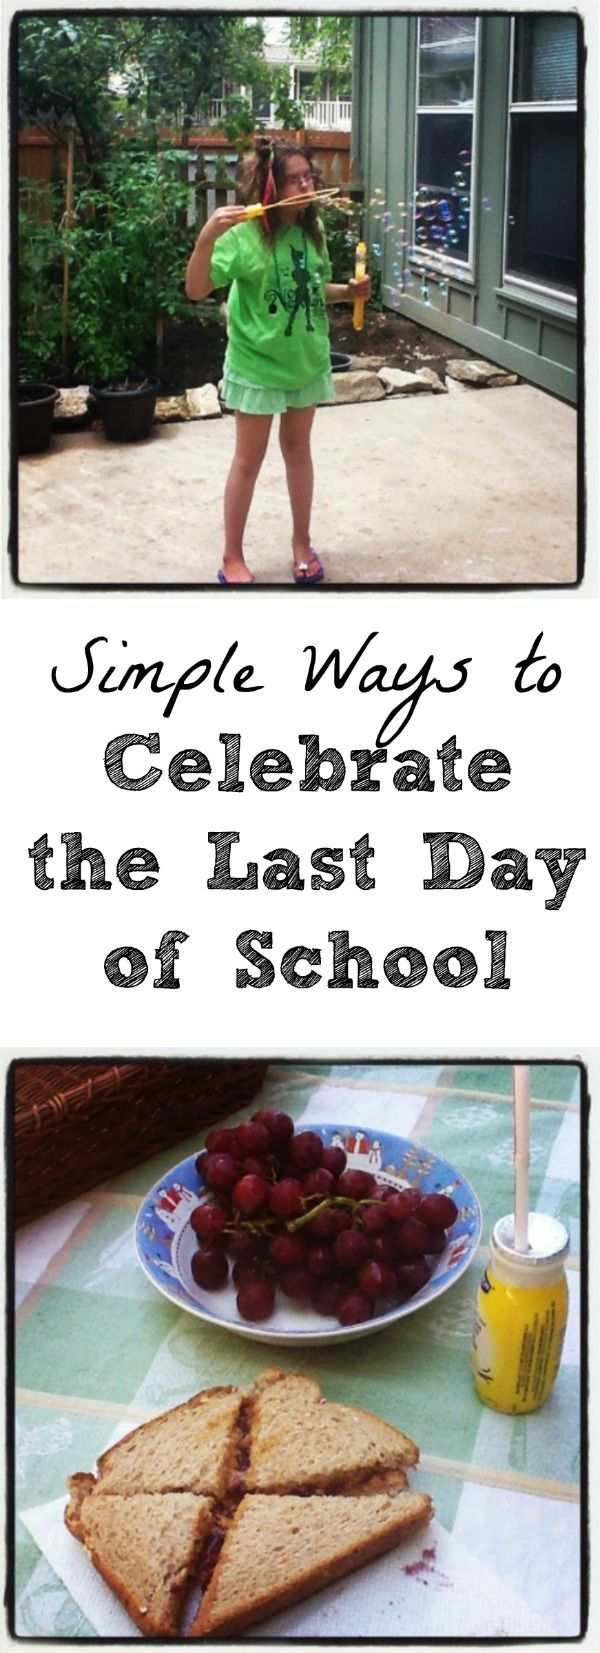 Great Ways to Celebrate the Last Day of School | Last day ...